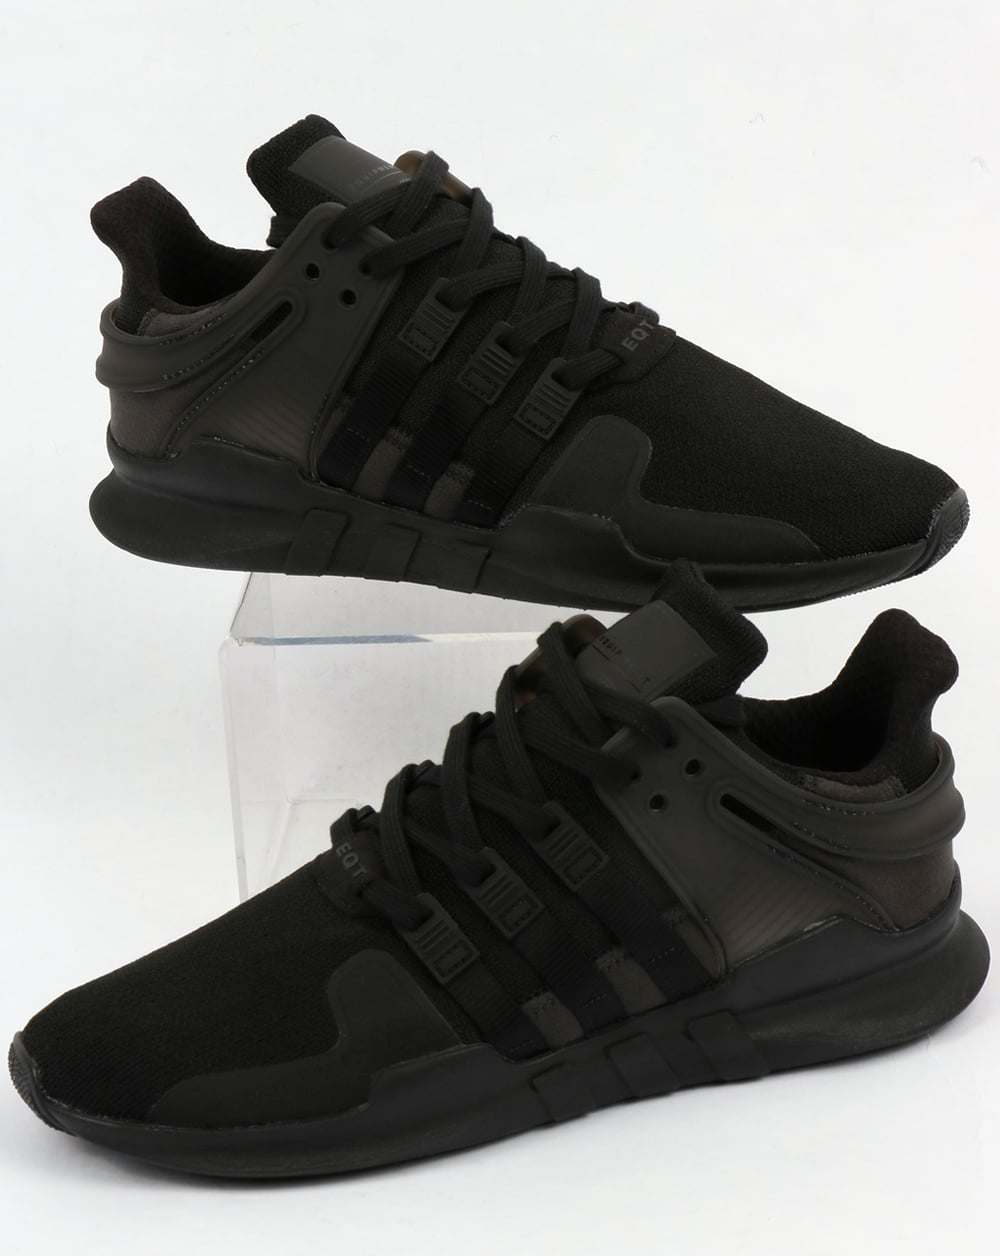 quality design 8a22f 14e7e Adidas EQT Support ADV Trainers Black